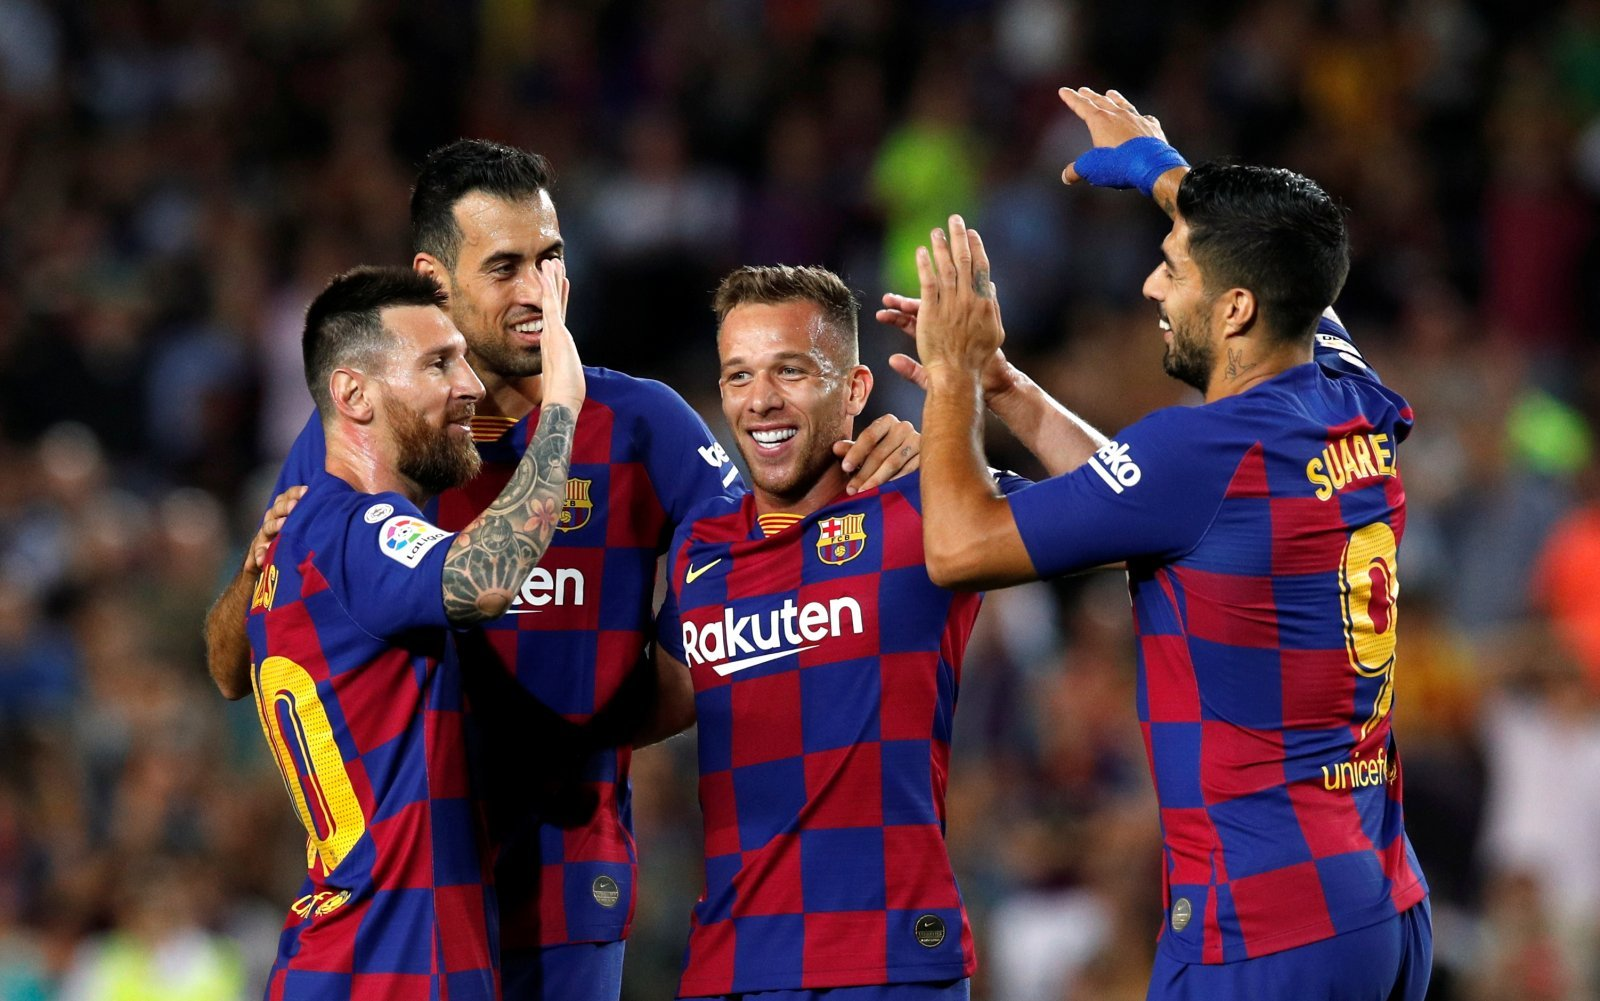 Unsung Hero: Arthur put in a solid shift for Barcelona as the Catalans come from behind to beat Inter